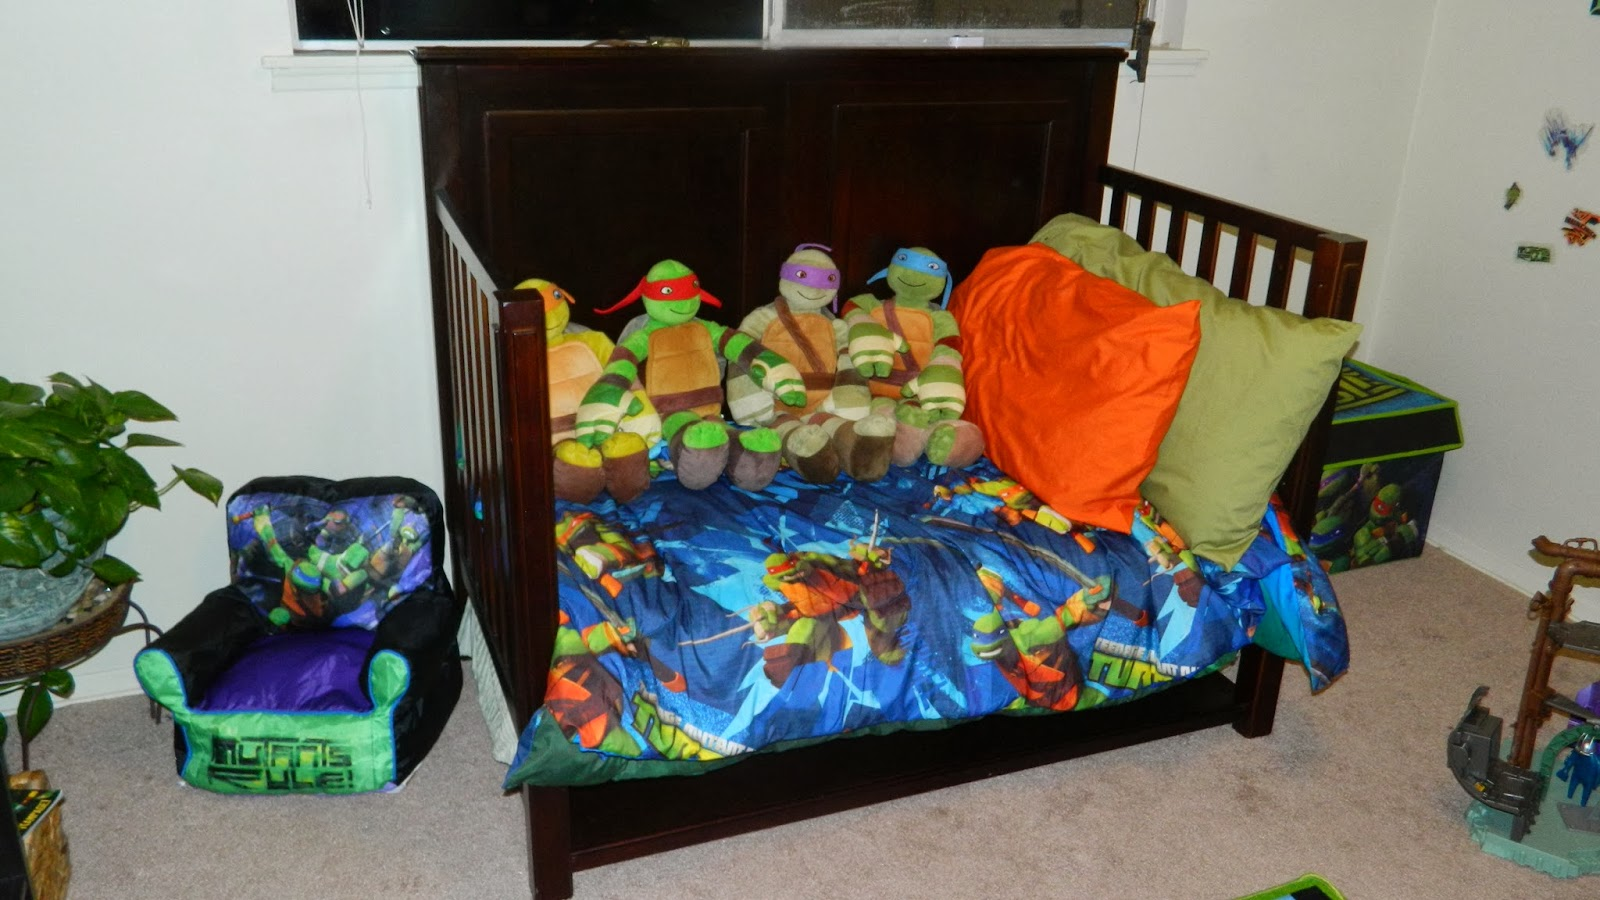 Ninja turtle bedroom -  Ninja Turtles Orange For Michelangelo Blue For Leonardo Purple For Donatello And Red For Raphael Then After Months Of Searching And Accumulating